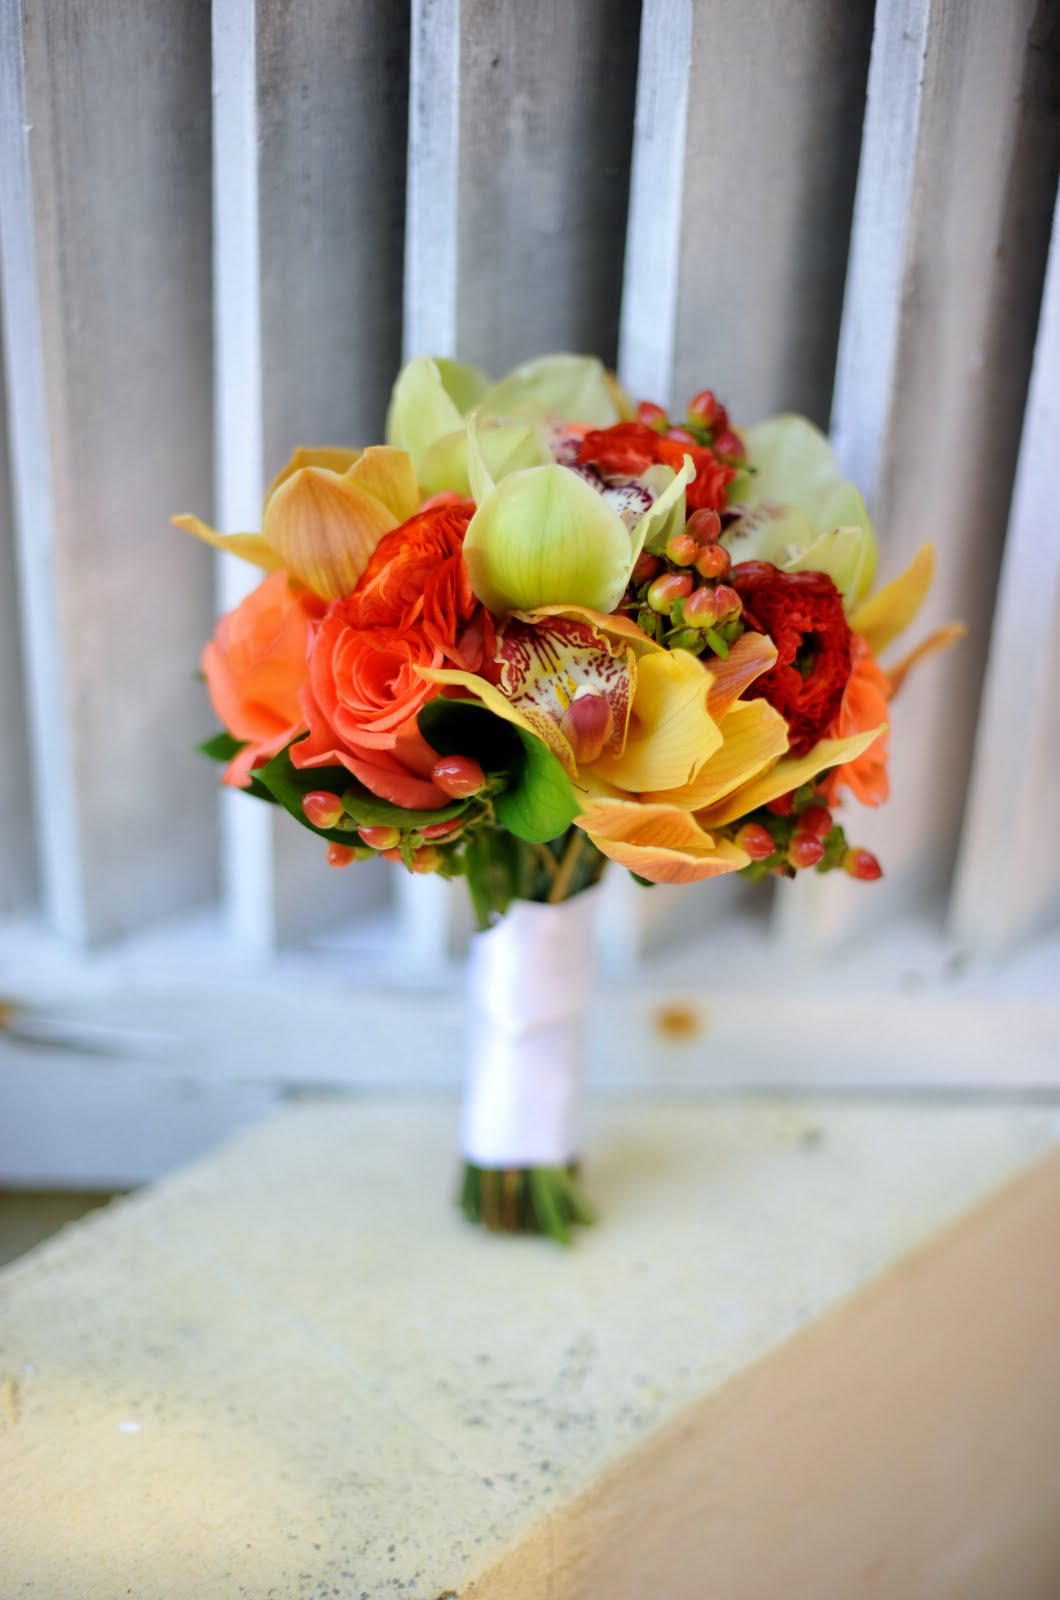 Your Bridal Bouquet Island Bliss Weddings